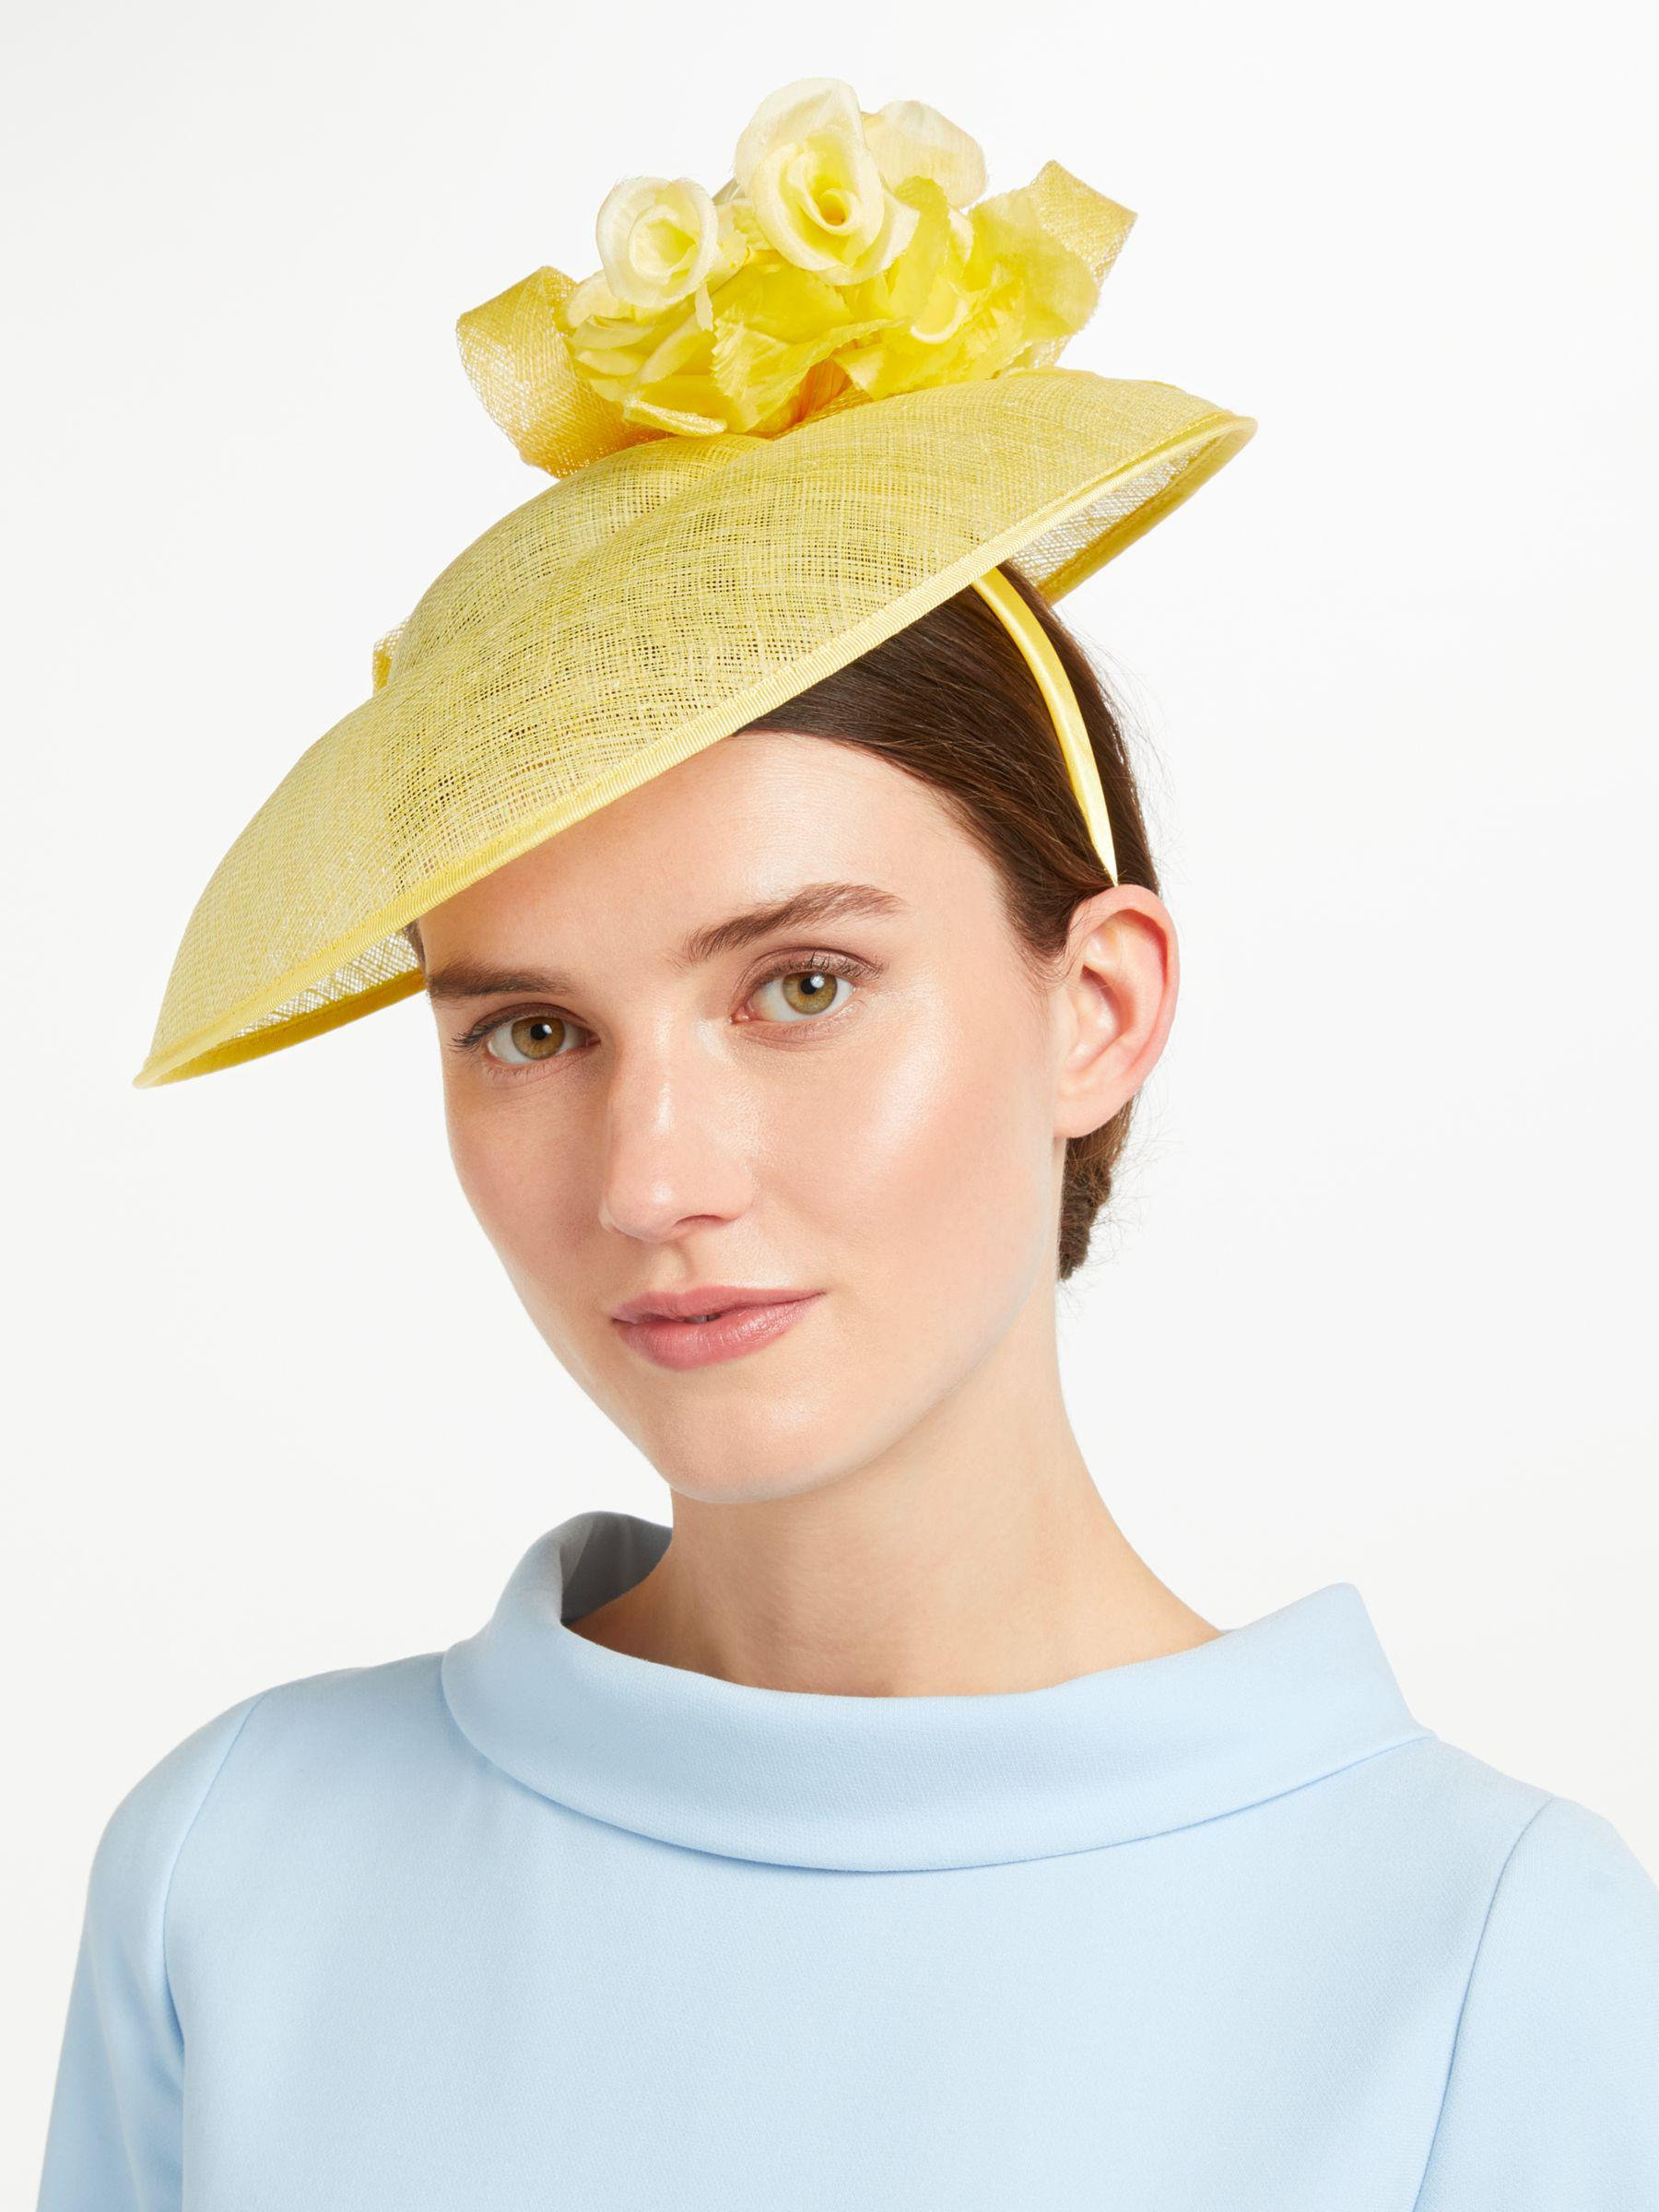 65492c1f John Lewis Ruth Rose Crown Disc Occasion Hat in Yellow - Lyst